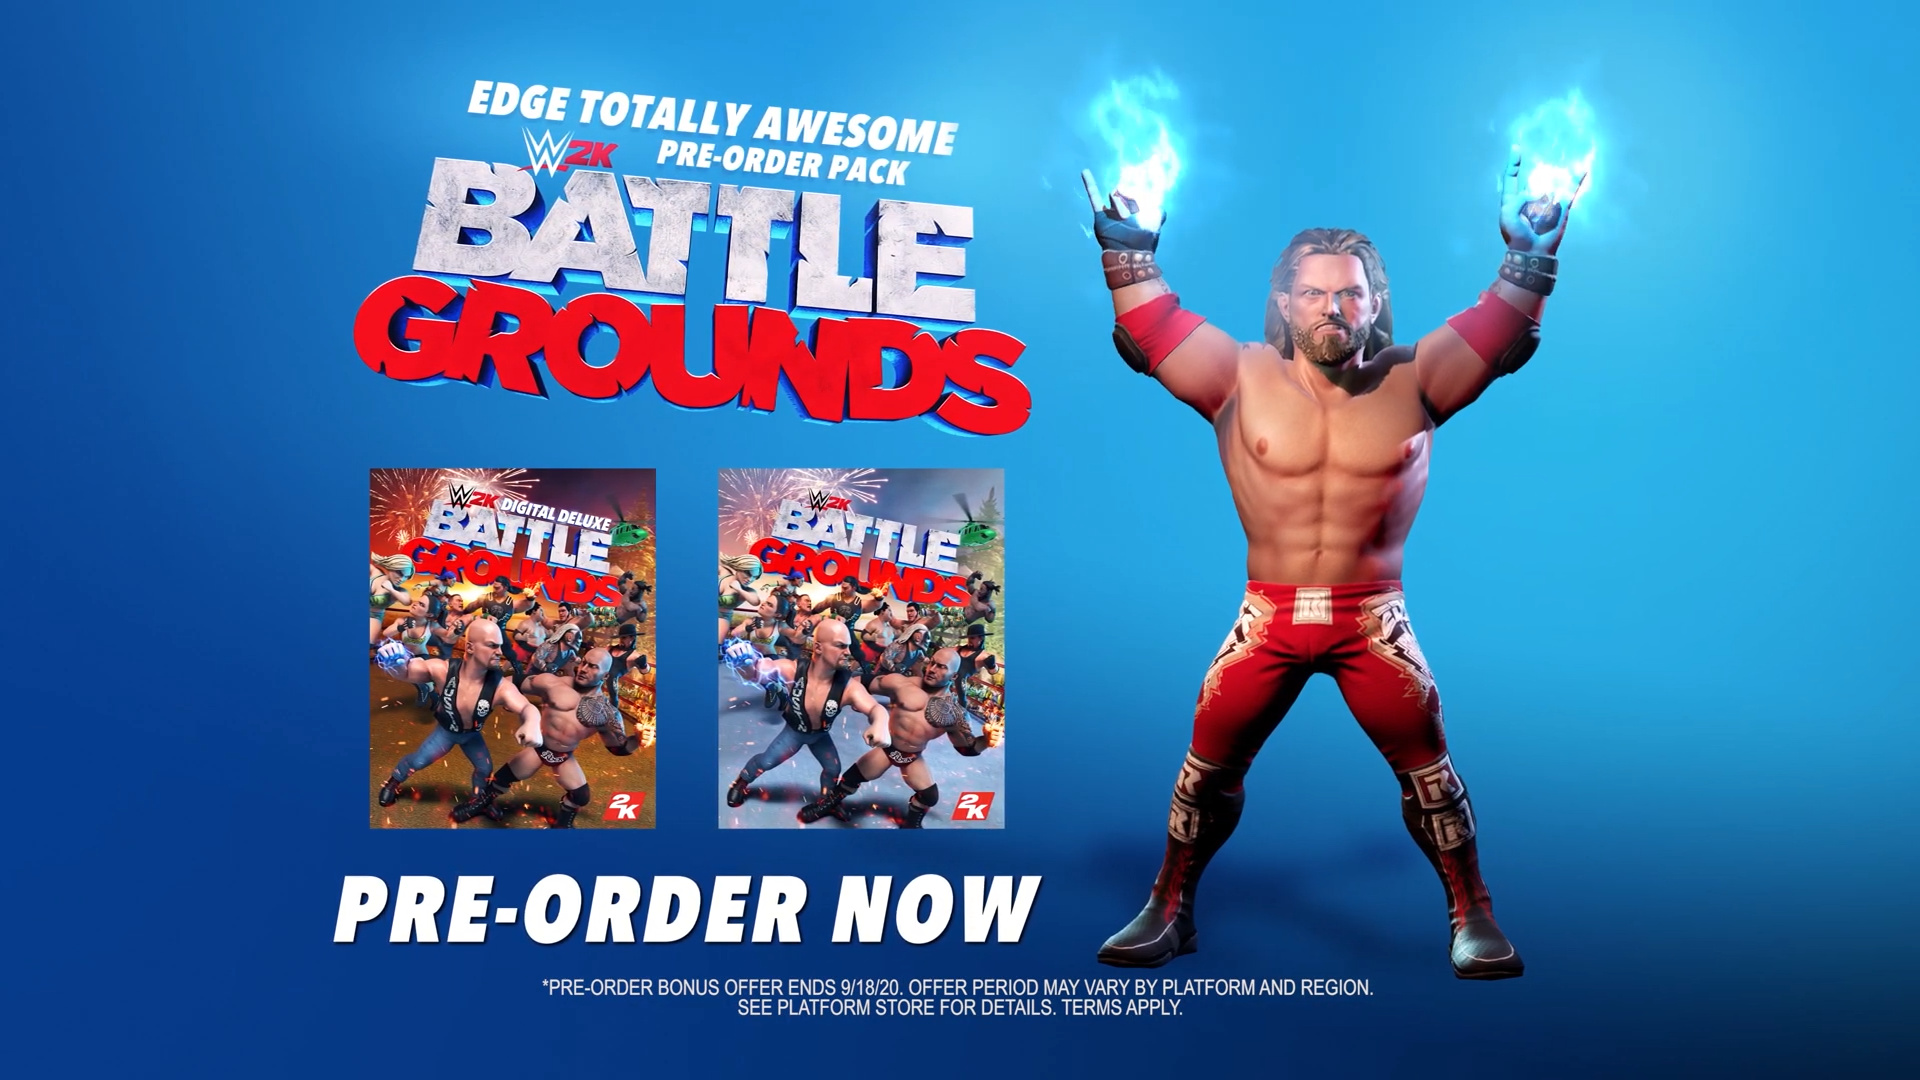 WWE 2K Battlegrounds - Edge Totally Awesome Pre-Order Pack